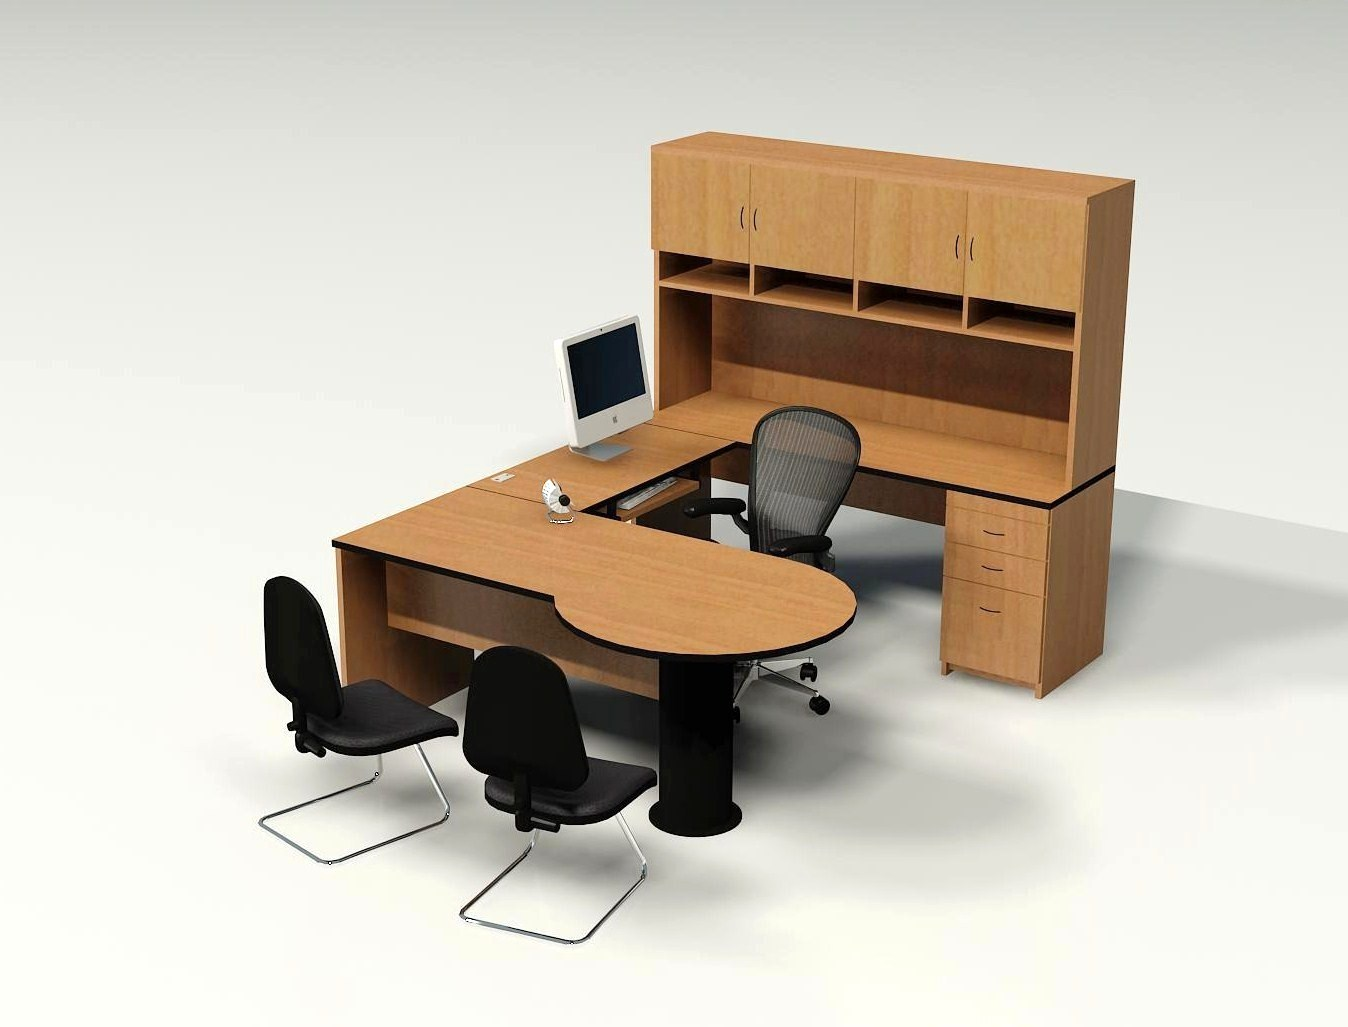 office furniture design images. plain office furniture images to design n